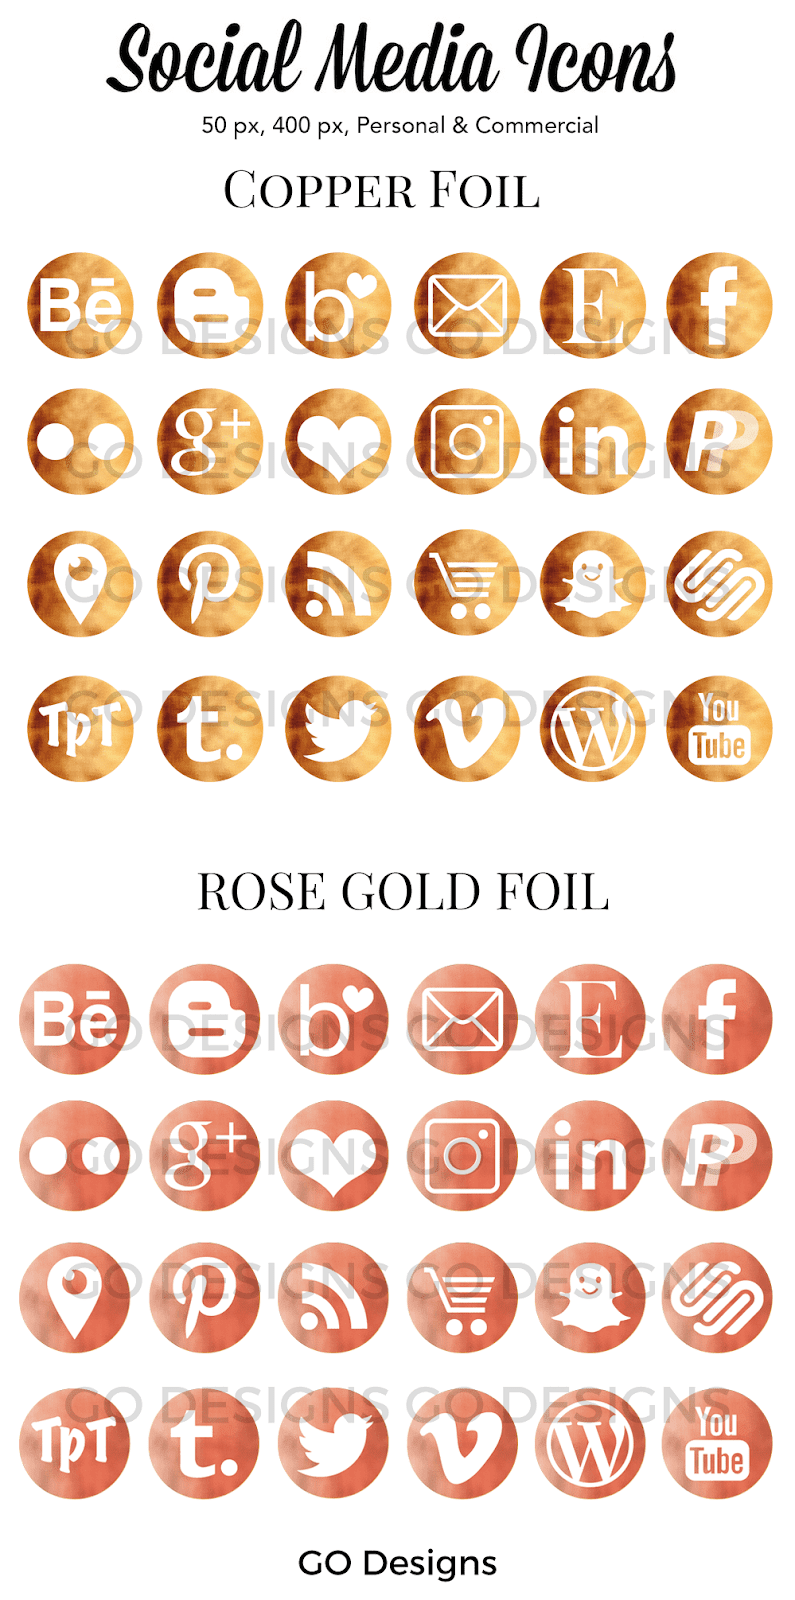 Copper Foil and Rose Gold Foil Social Media Icons by GO Designs (www.gradeonederfuldesigns.com)